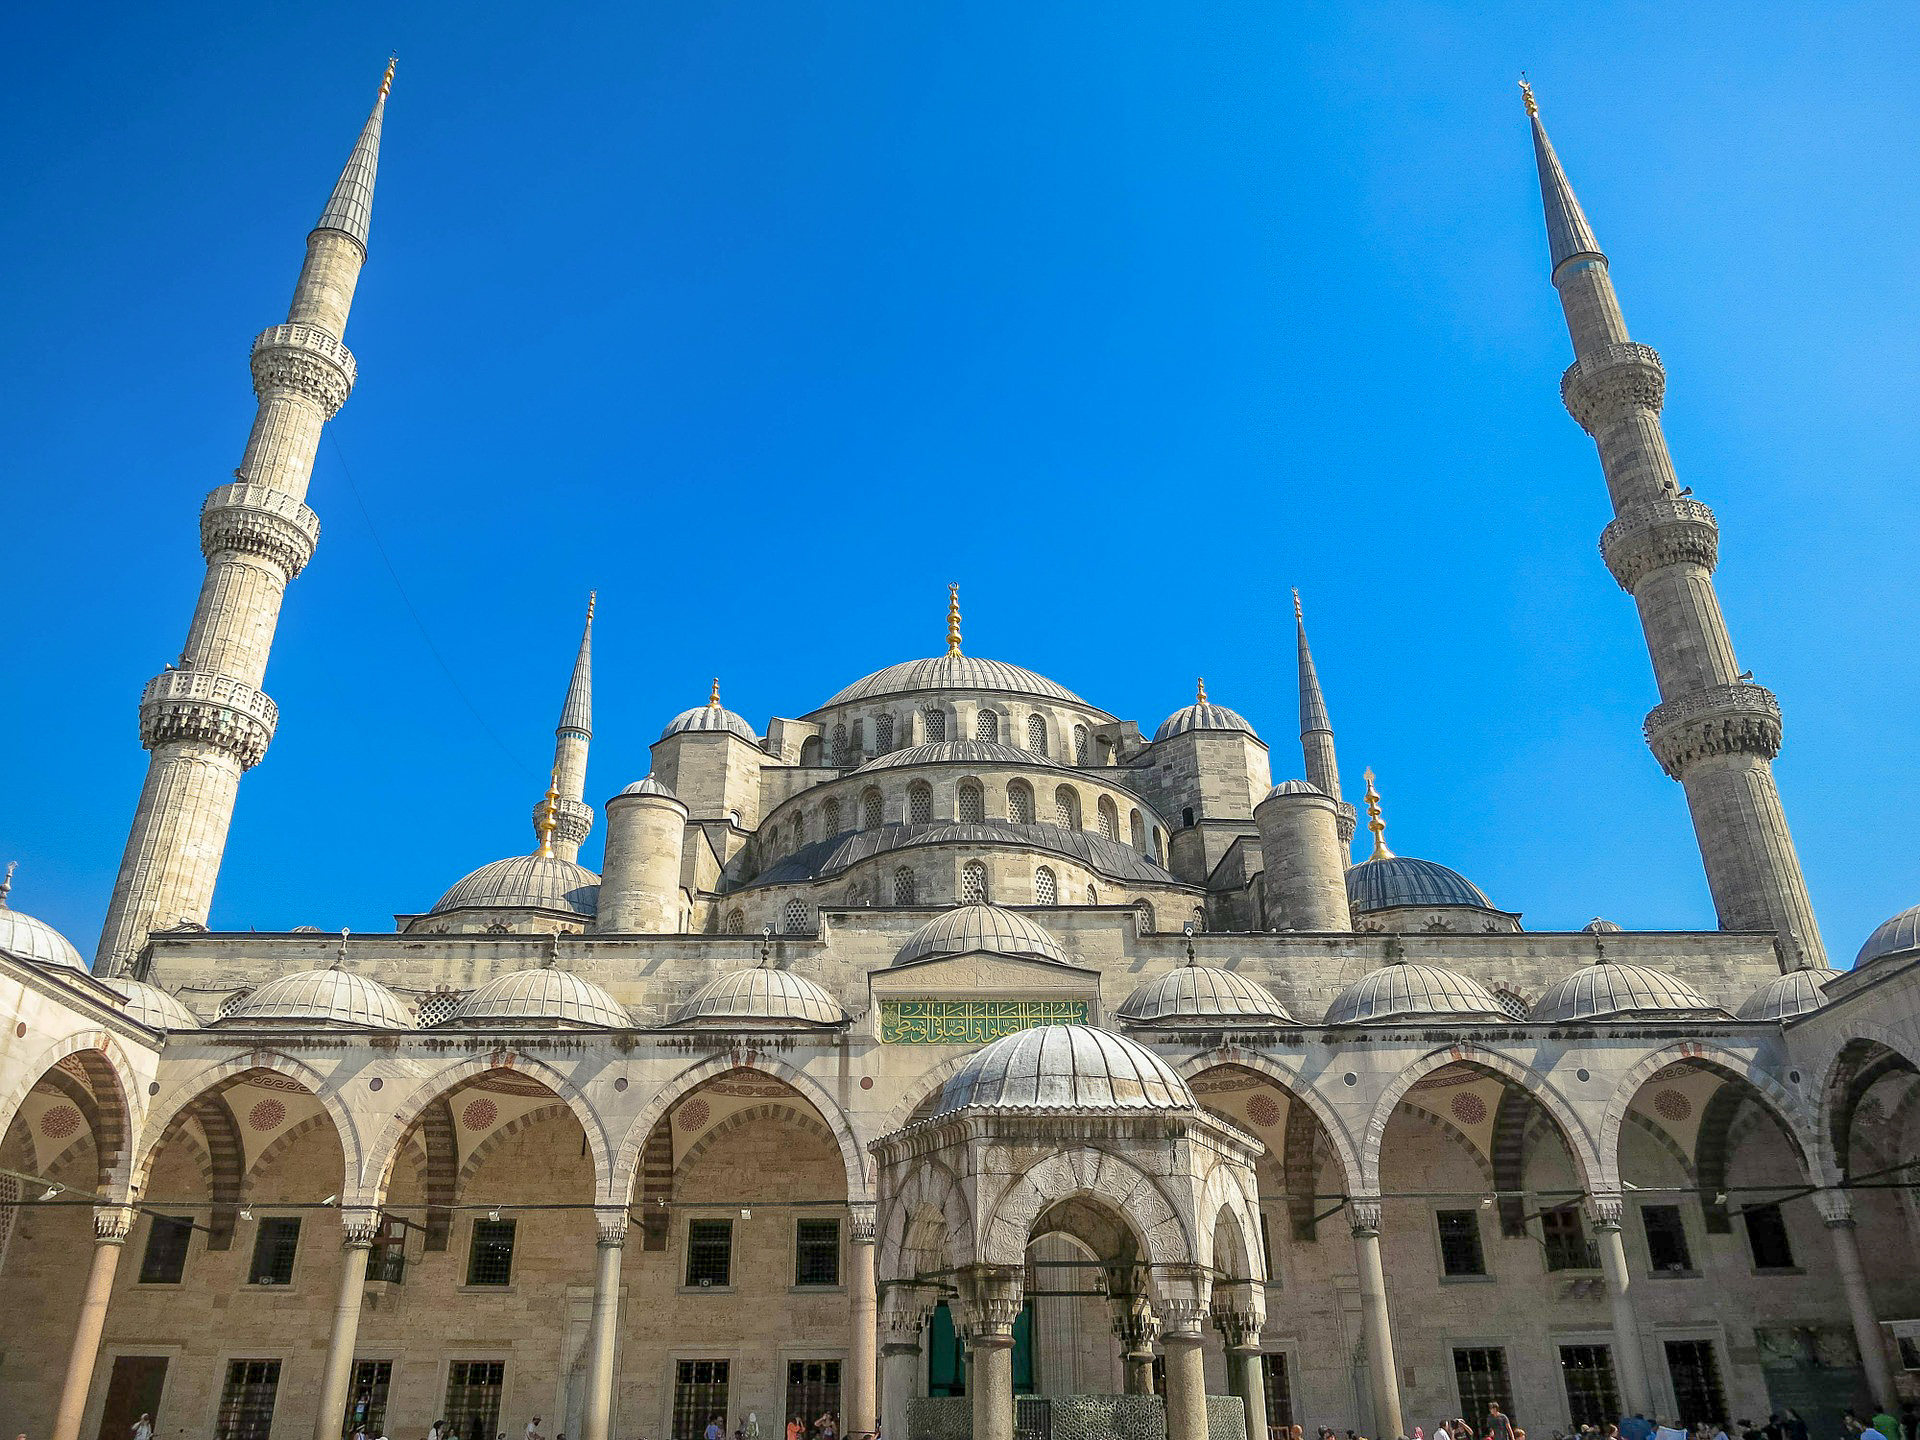 The Blue Mosque's grand minarets are a sight to behold.